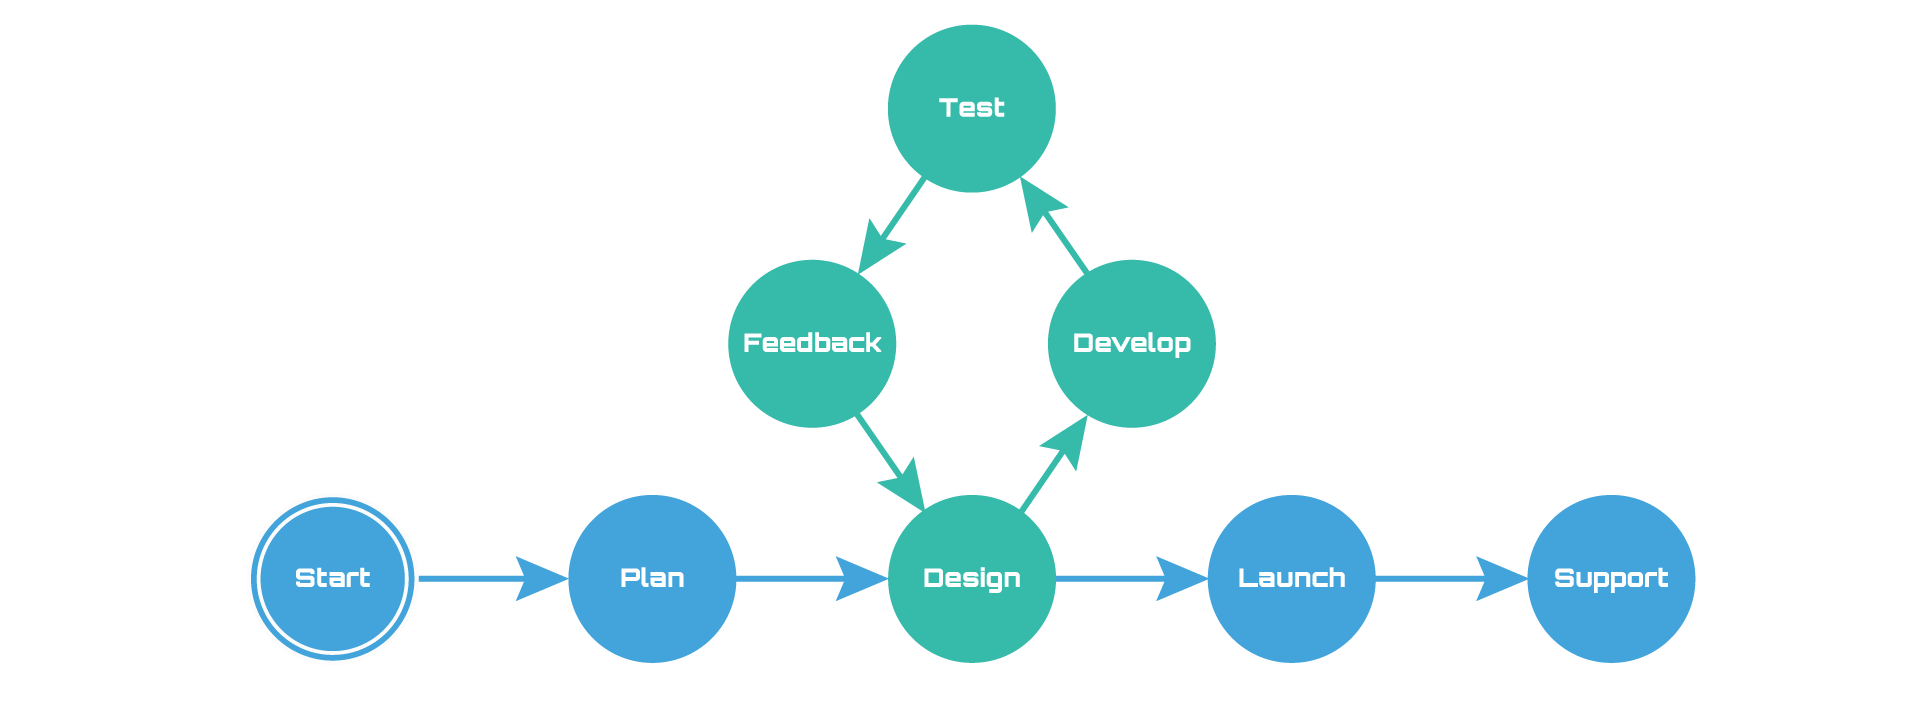 ipCG-DEV full Stack custom software development process